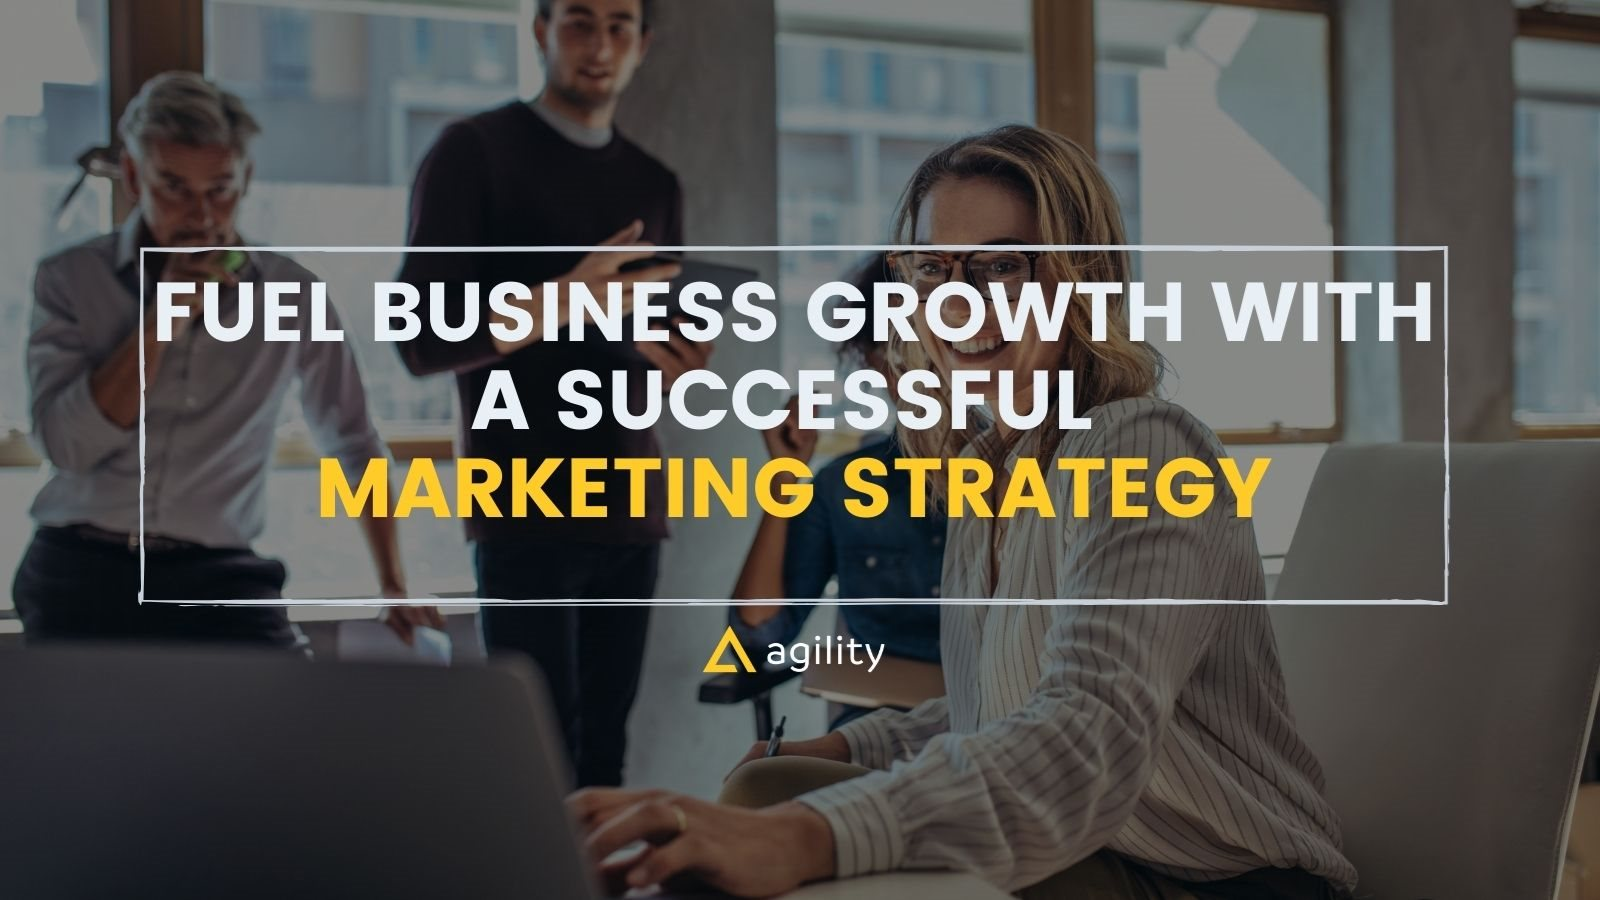 Marketers creating a strategy on agilitycms.com